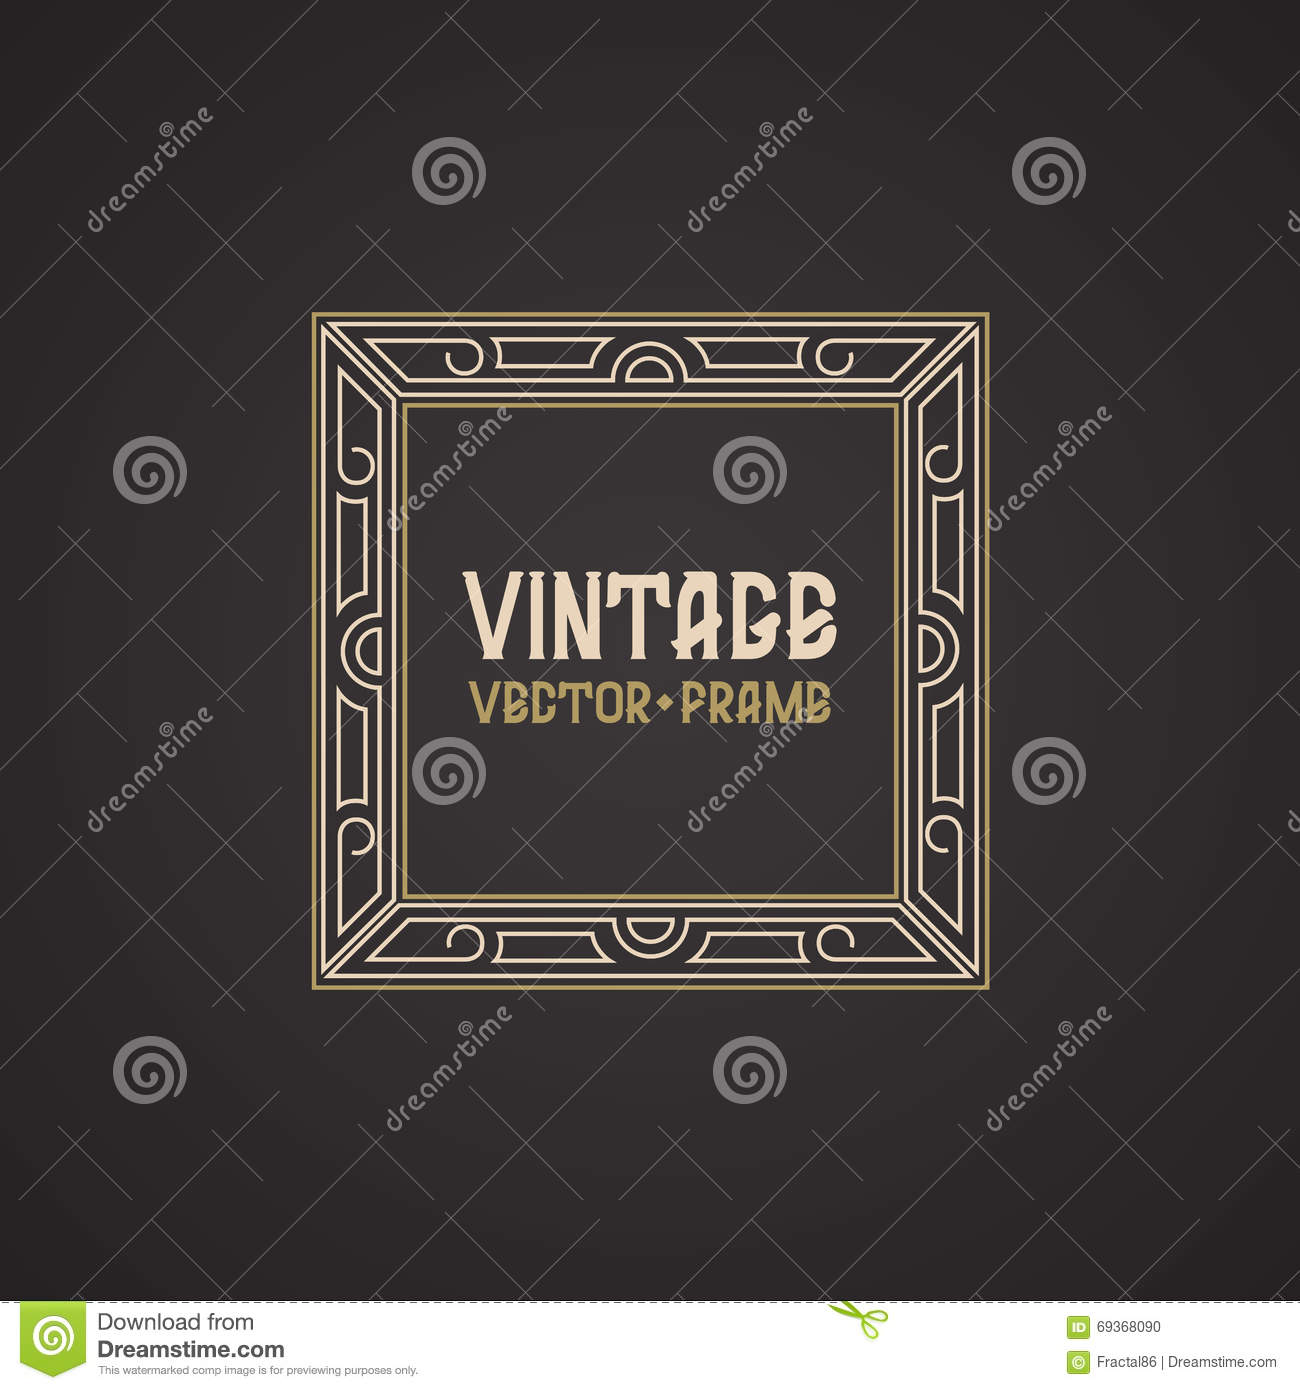 Vector geometric linear style frame vintage text for A style text decoration